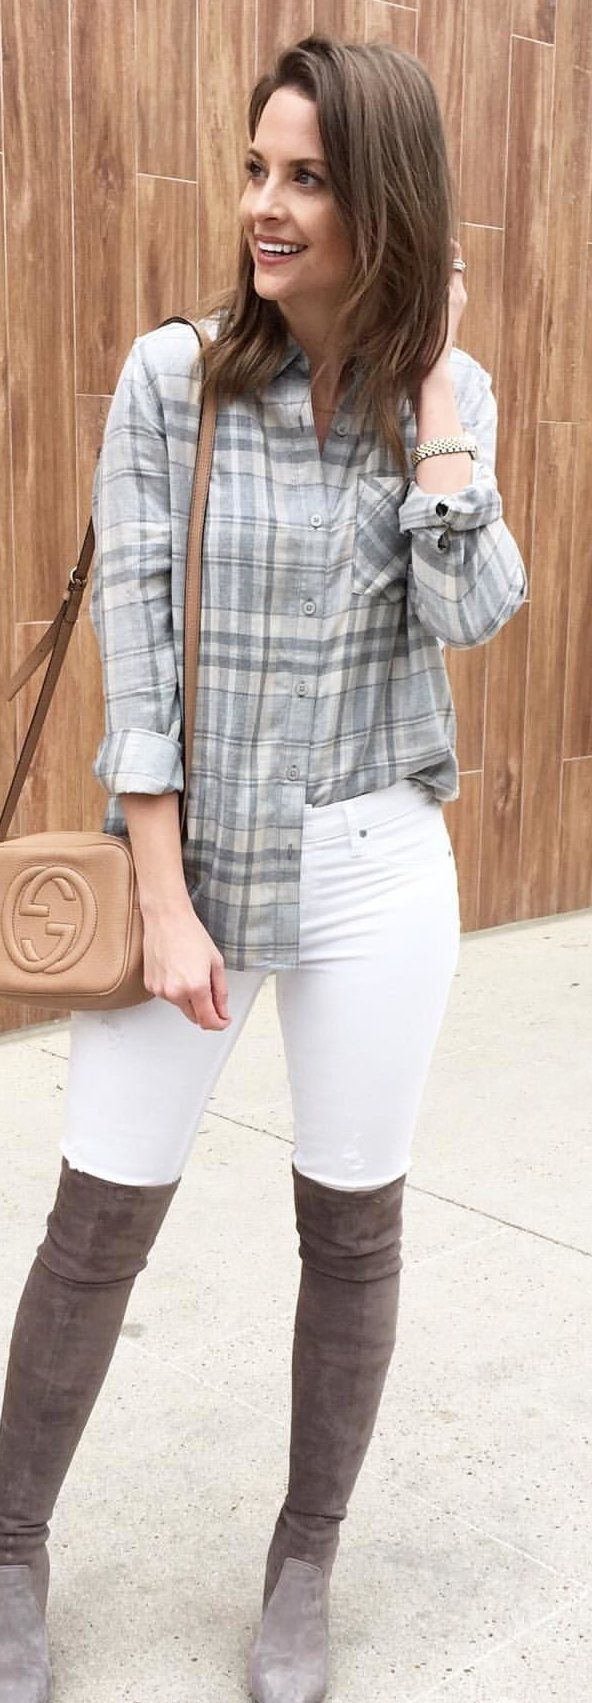 Outfit Trends, Latest 2018 Outfit Trends